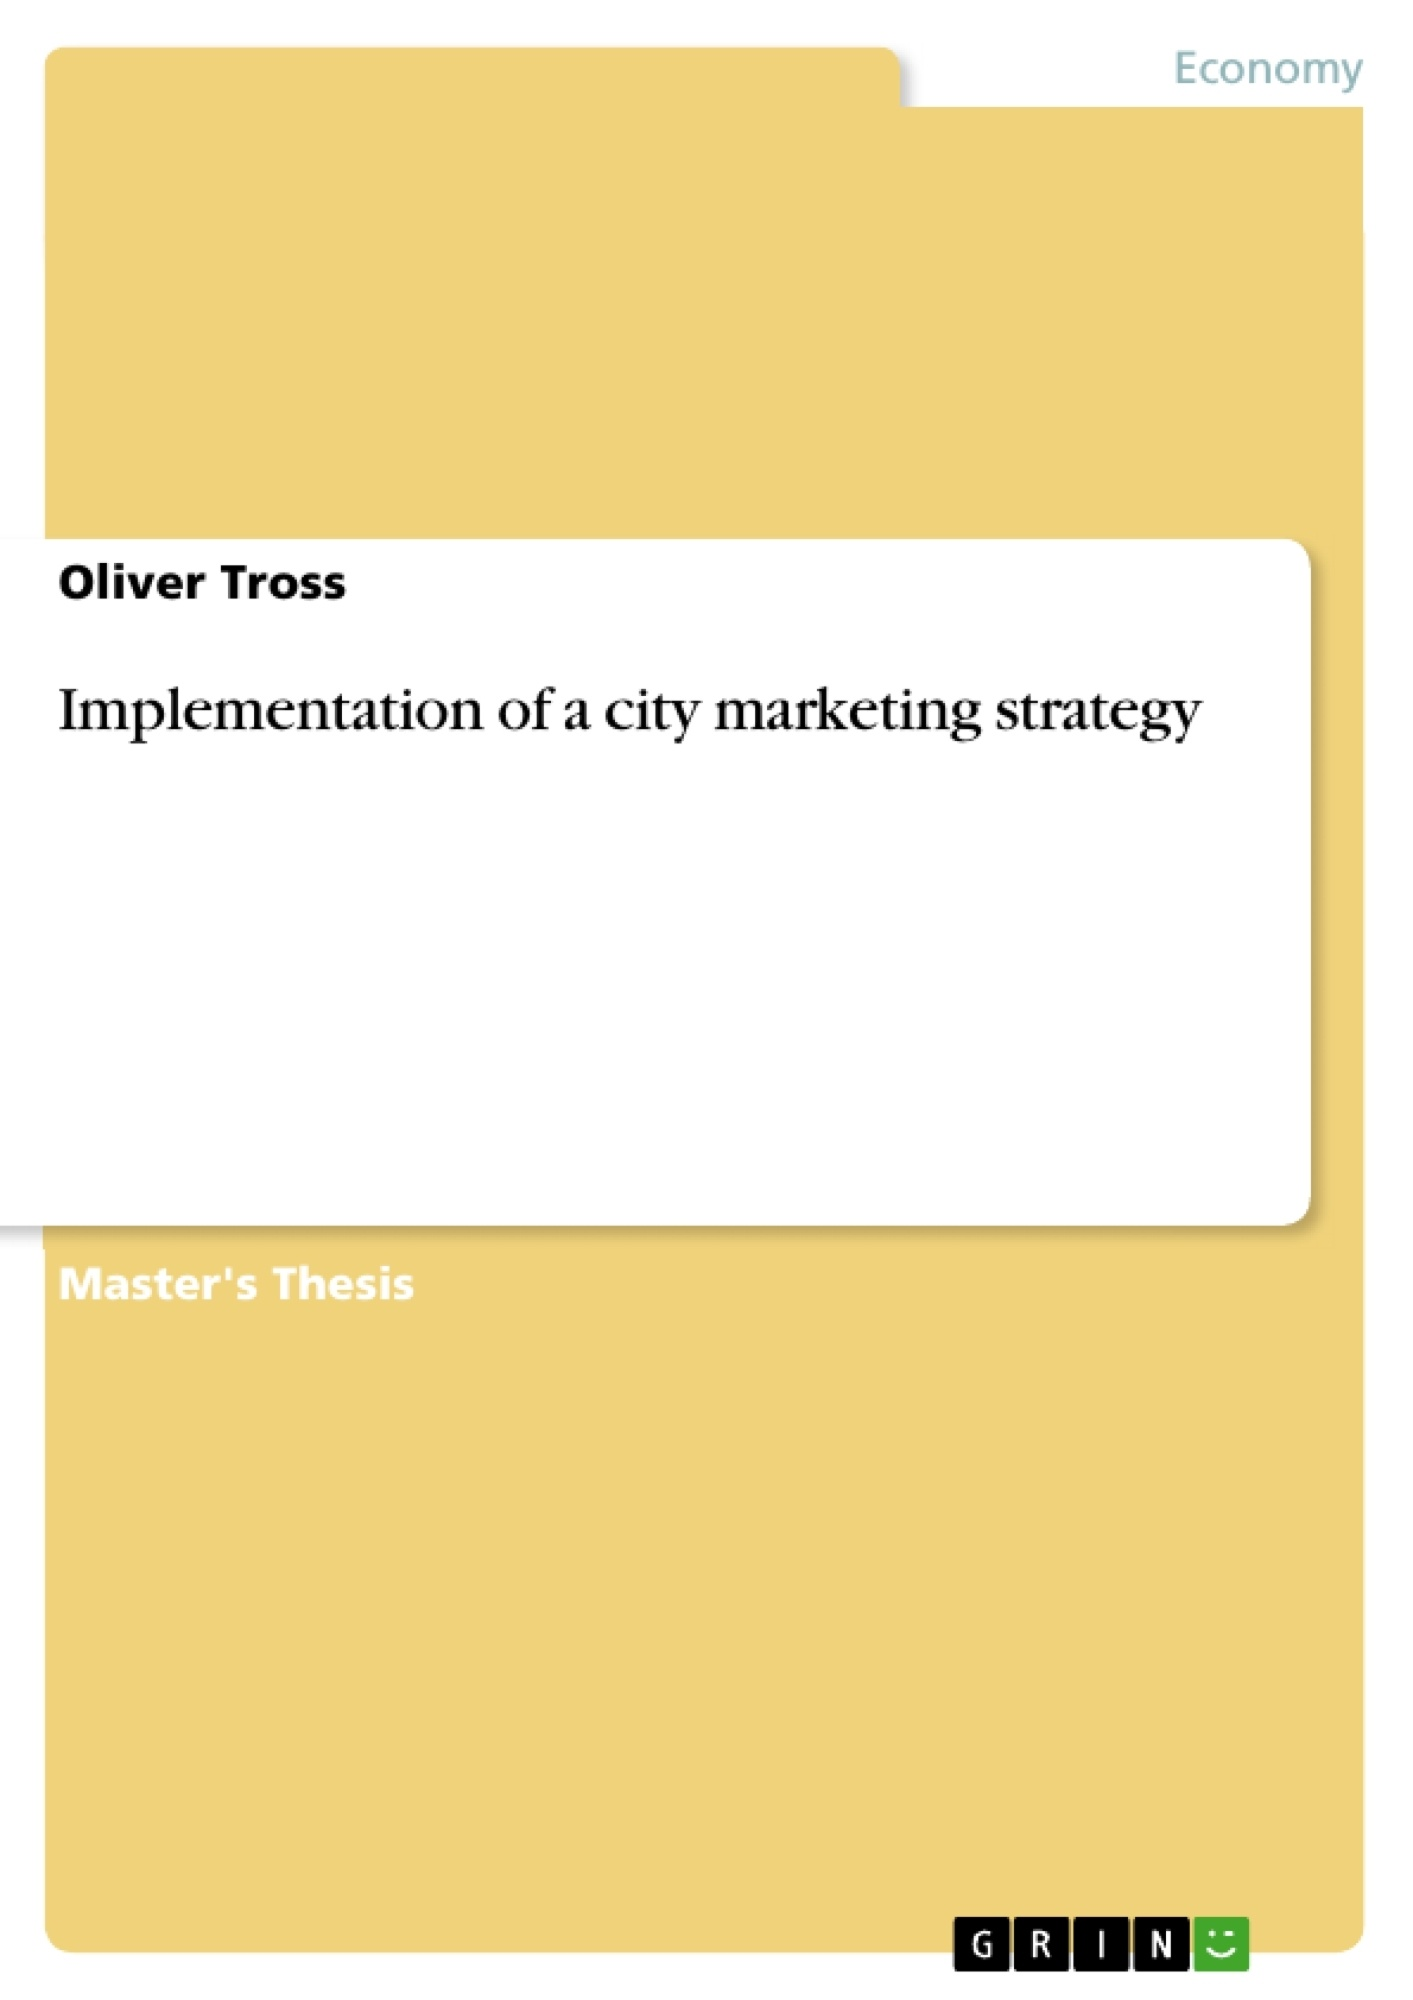 Title: Implementation of a city marketing strategy